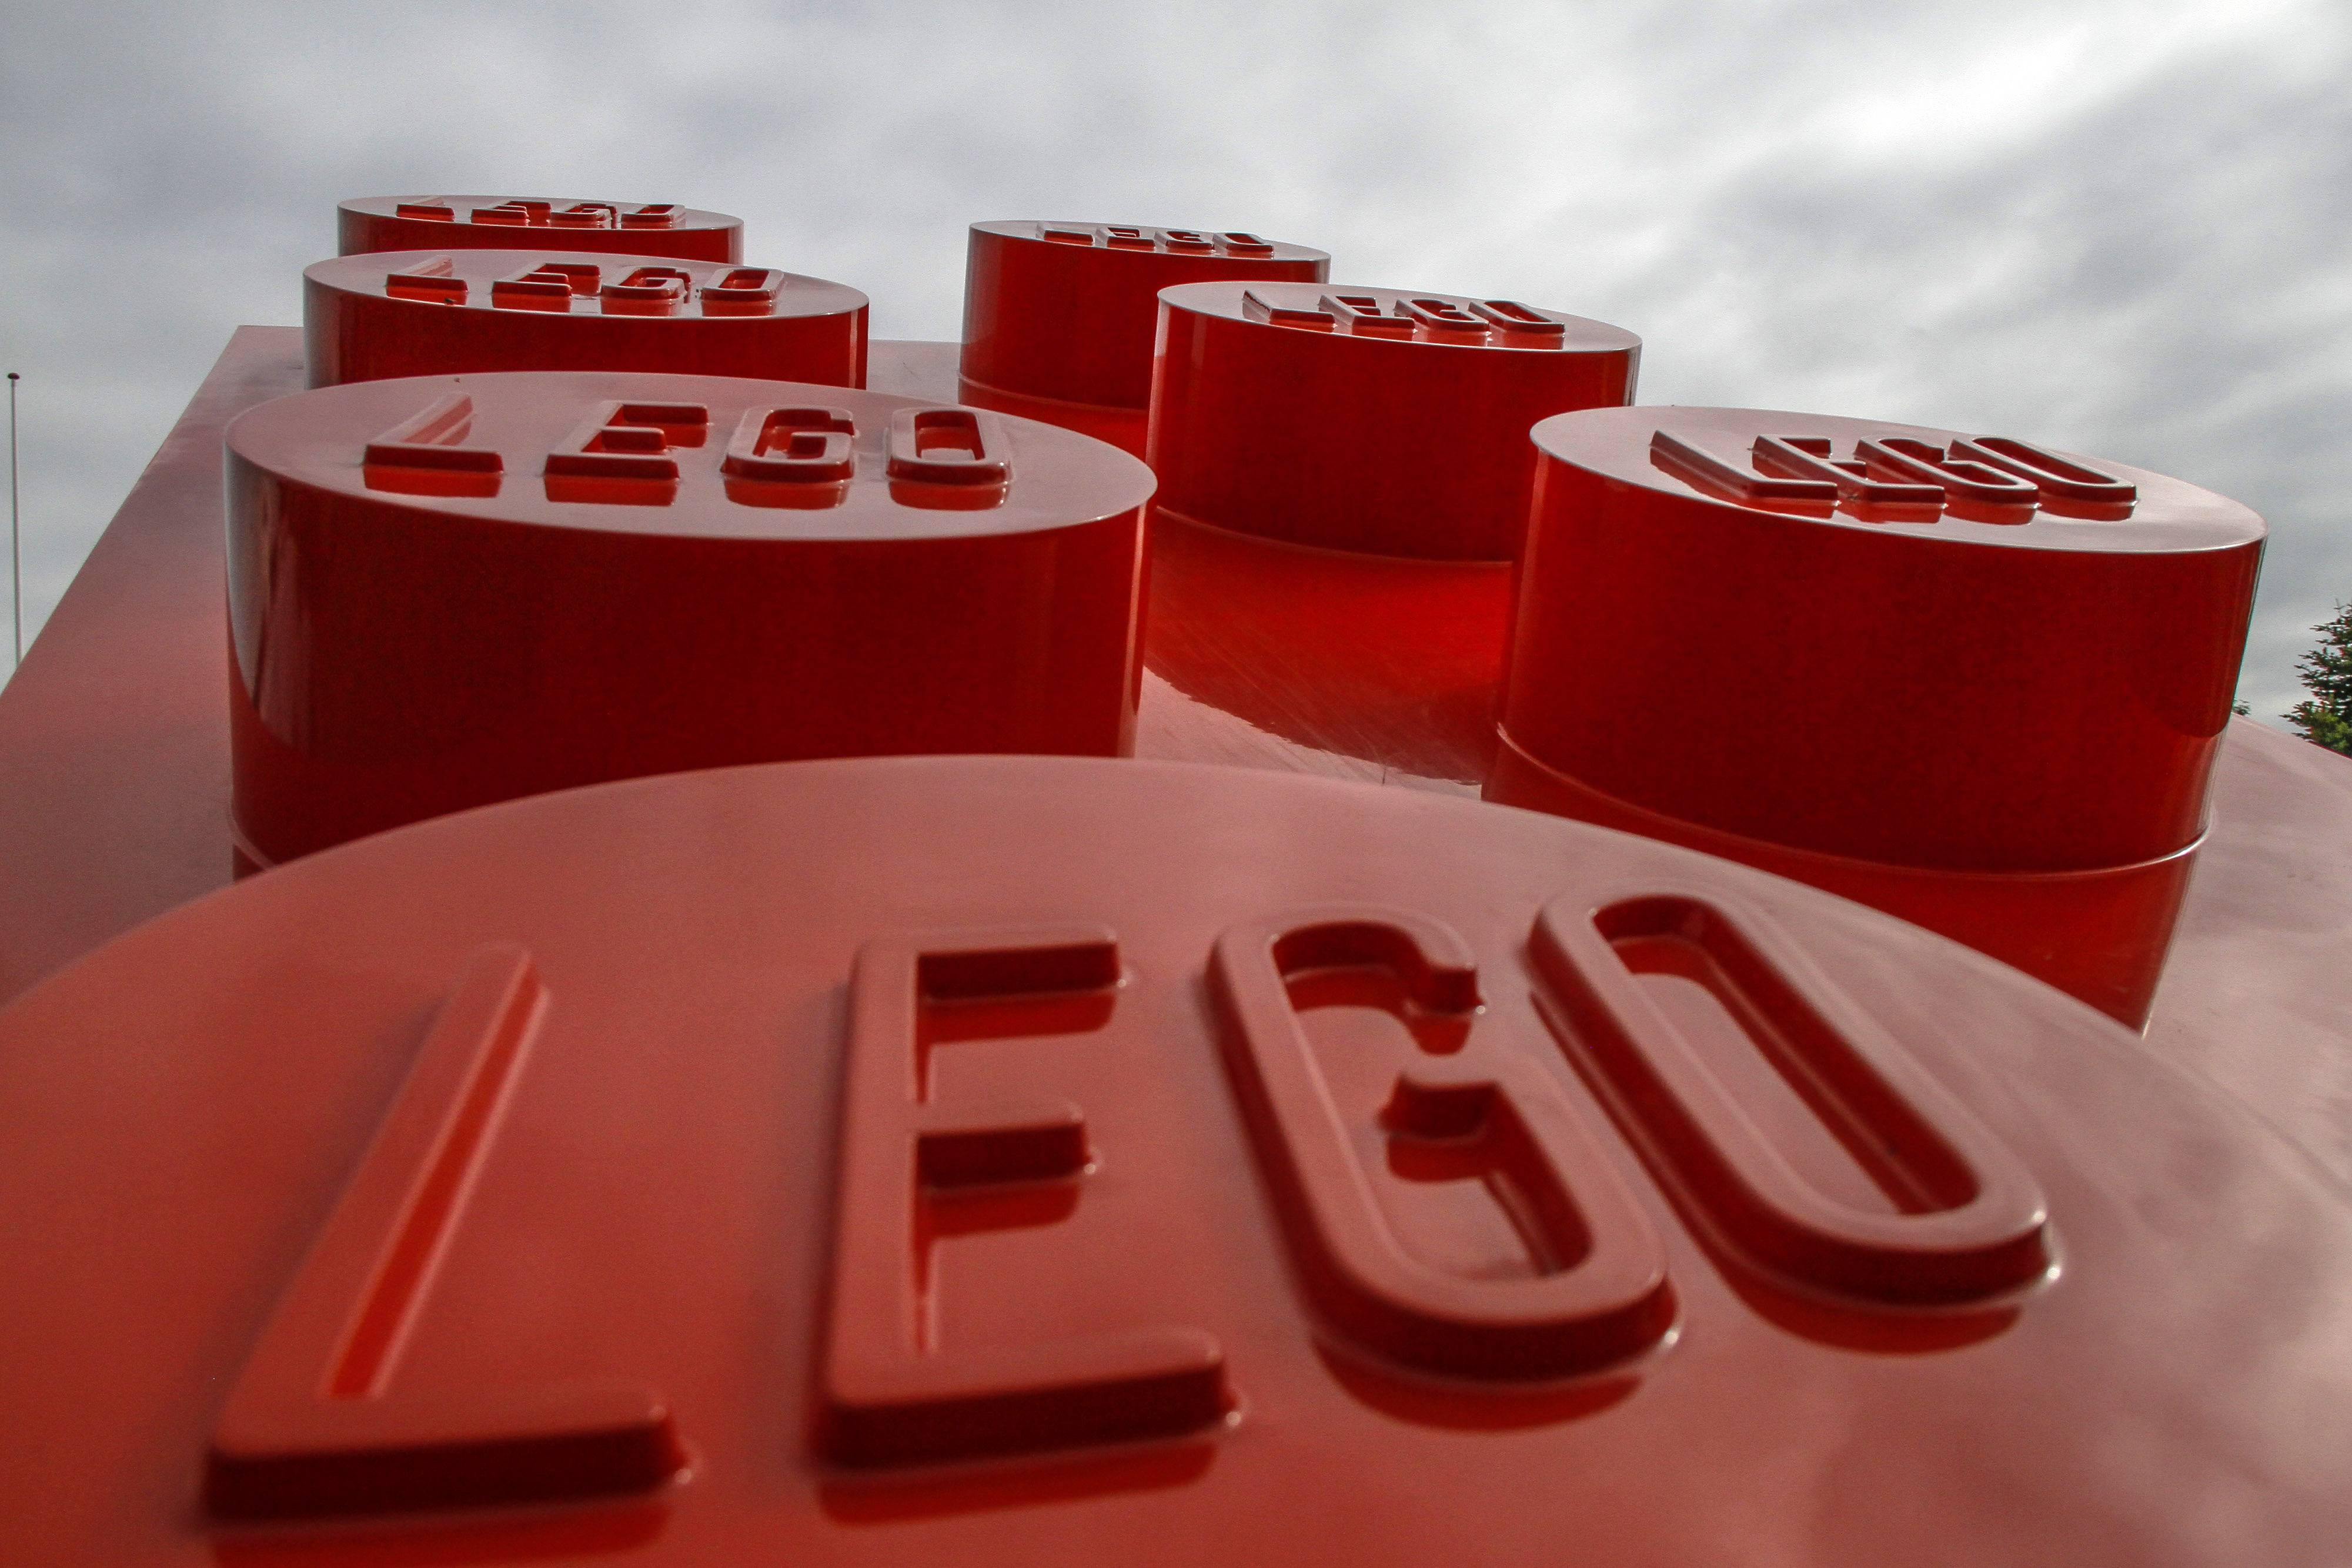 A downstate public library is hoping to use Legos to improve physical, imaginative and mechanical qualities in children that increase attention span, memory, creativity, language and vocabulary skills all in a fun and relaxed atmosphere.